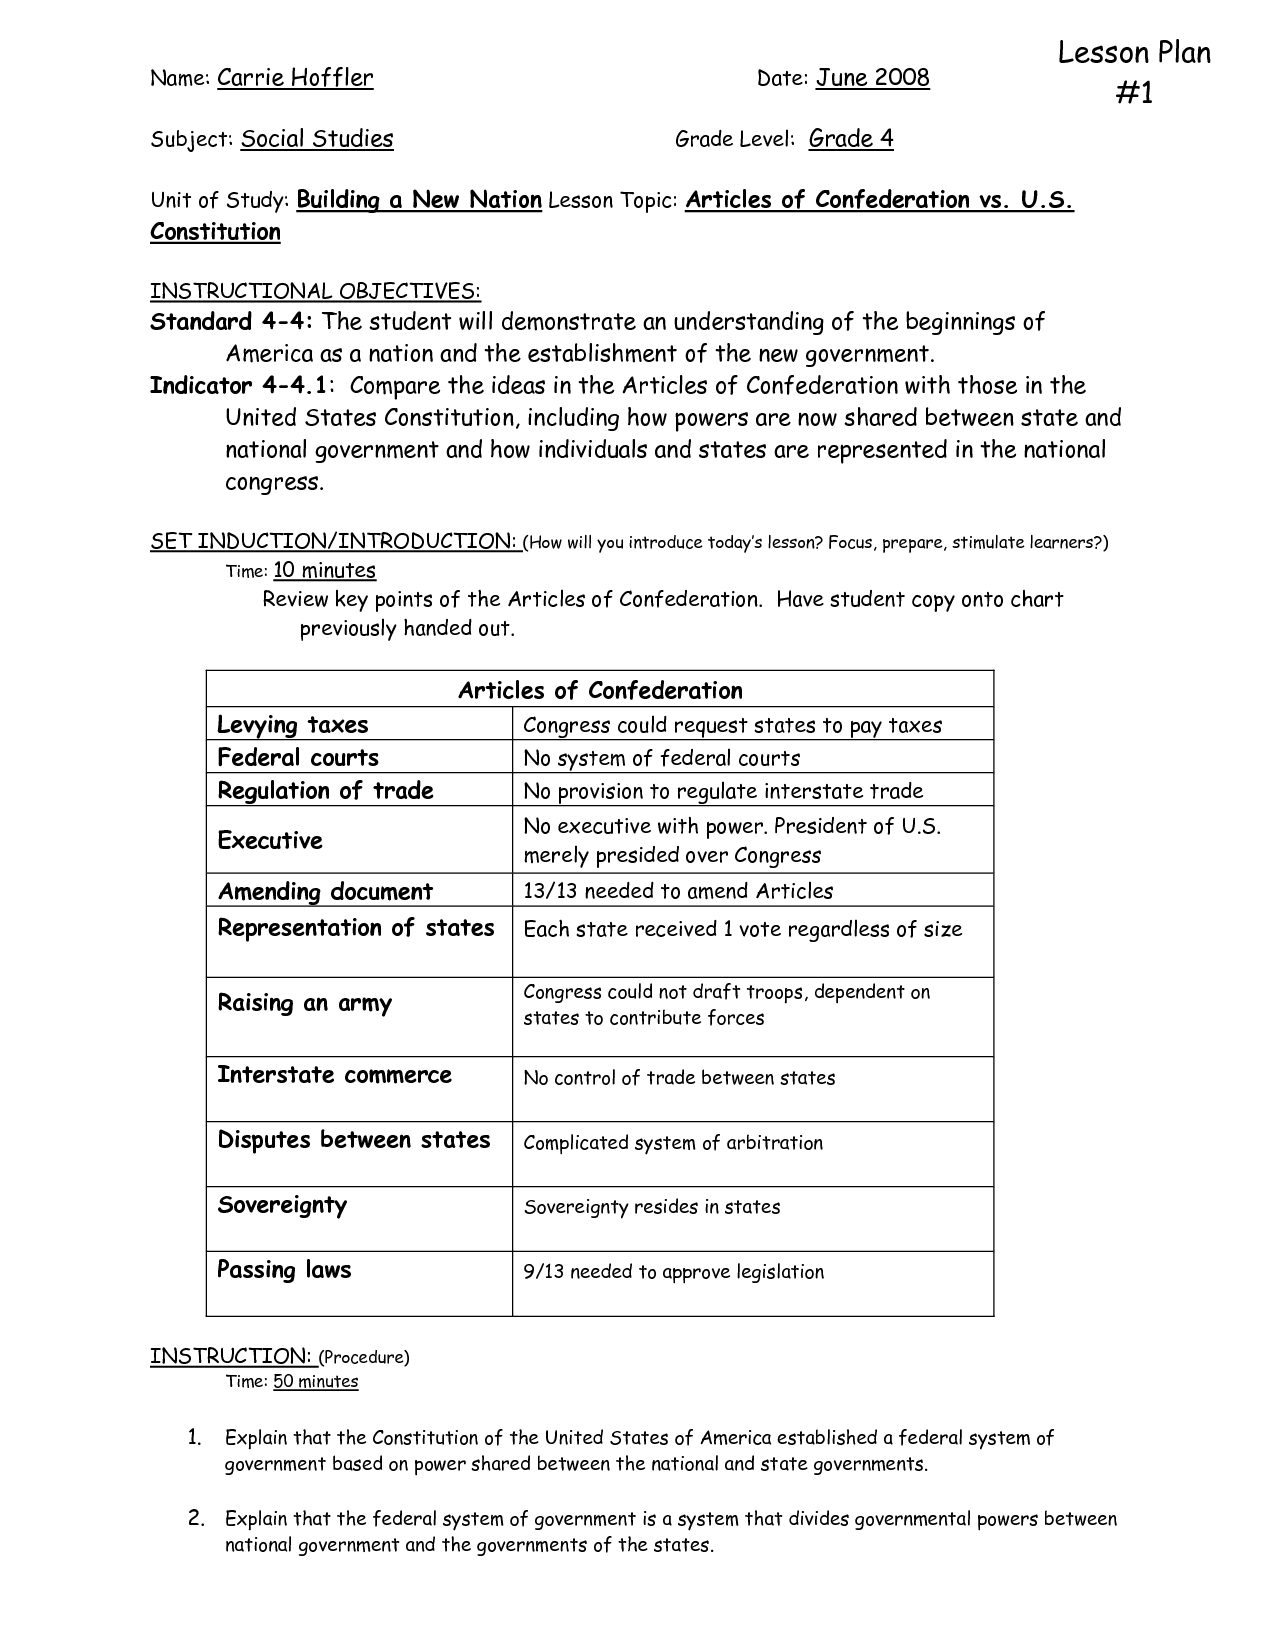 American revolution clipart article confederation. Chart to compare and